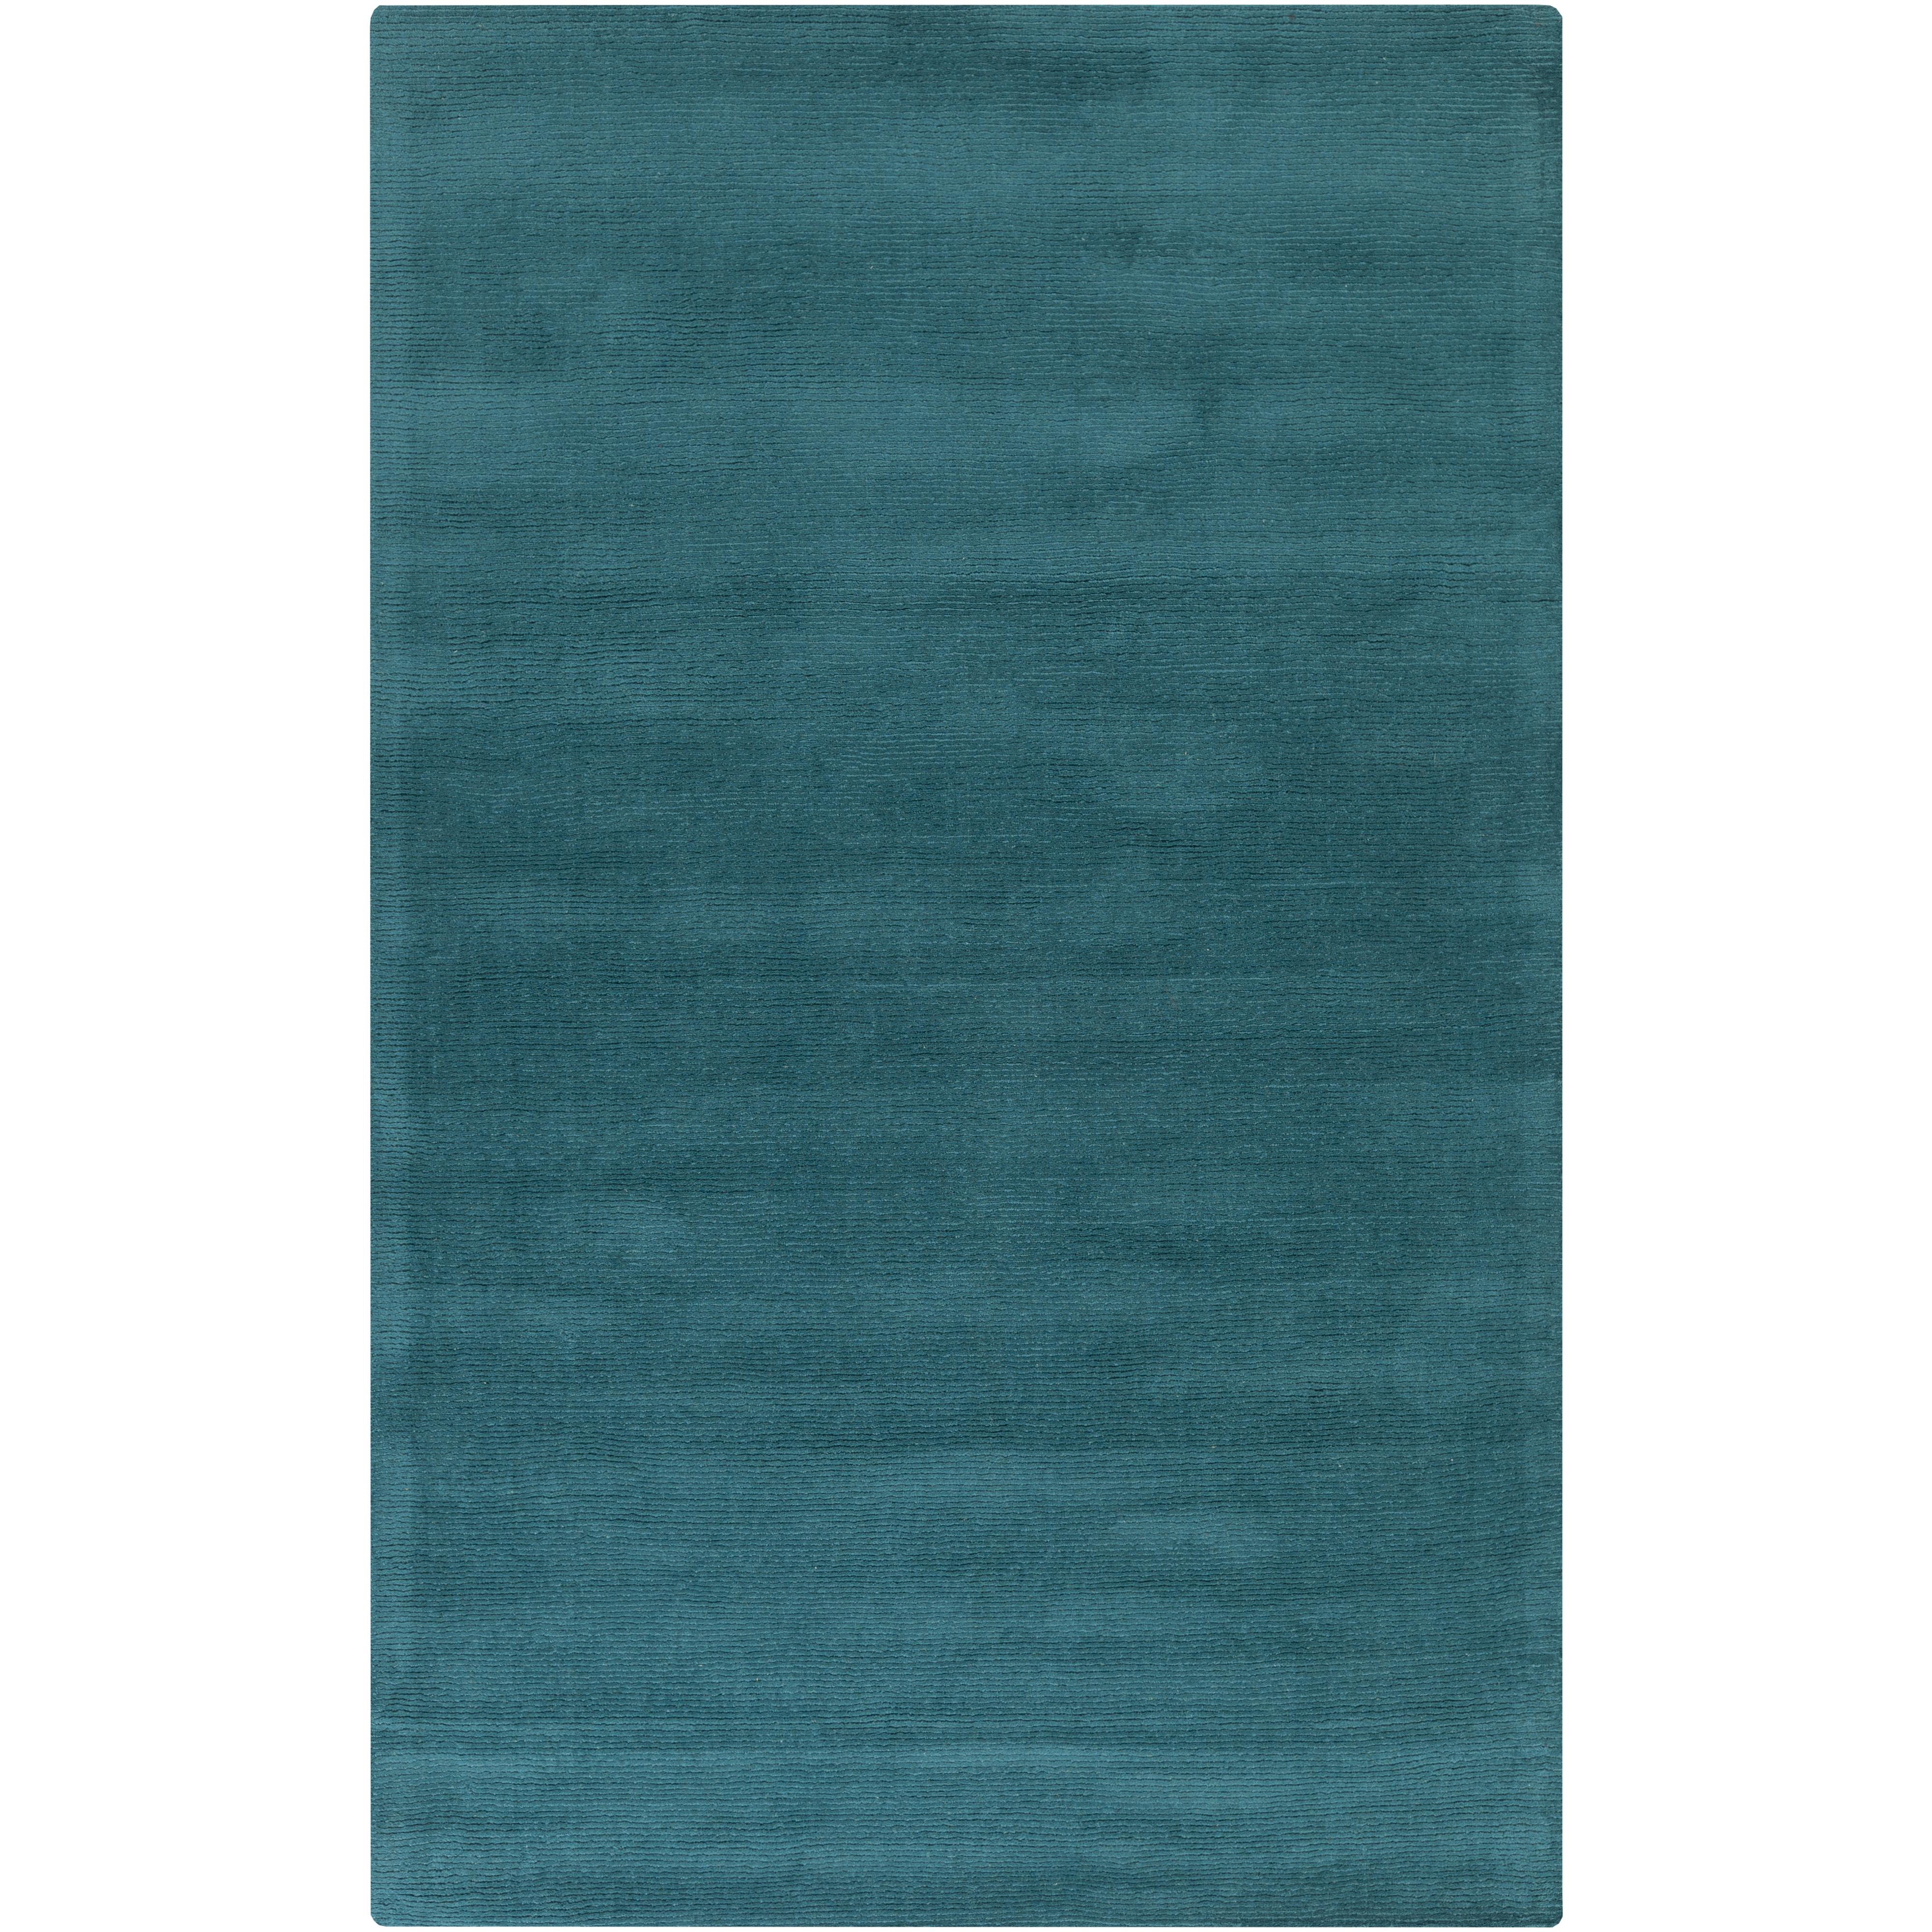 Surya Mystique 5' x 8' - Item Number: M5330-58